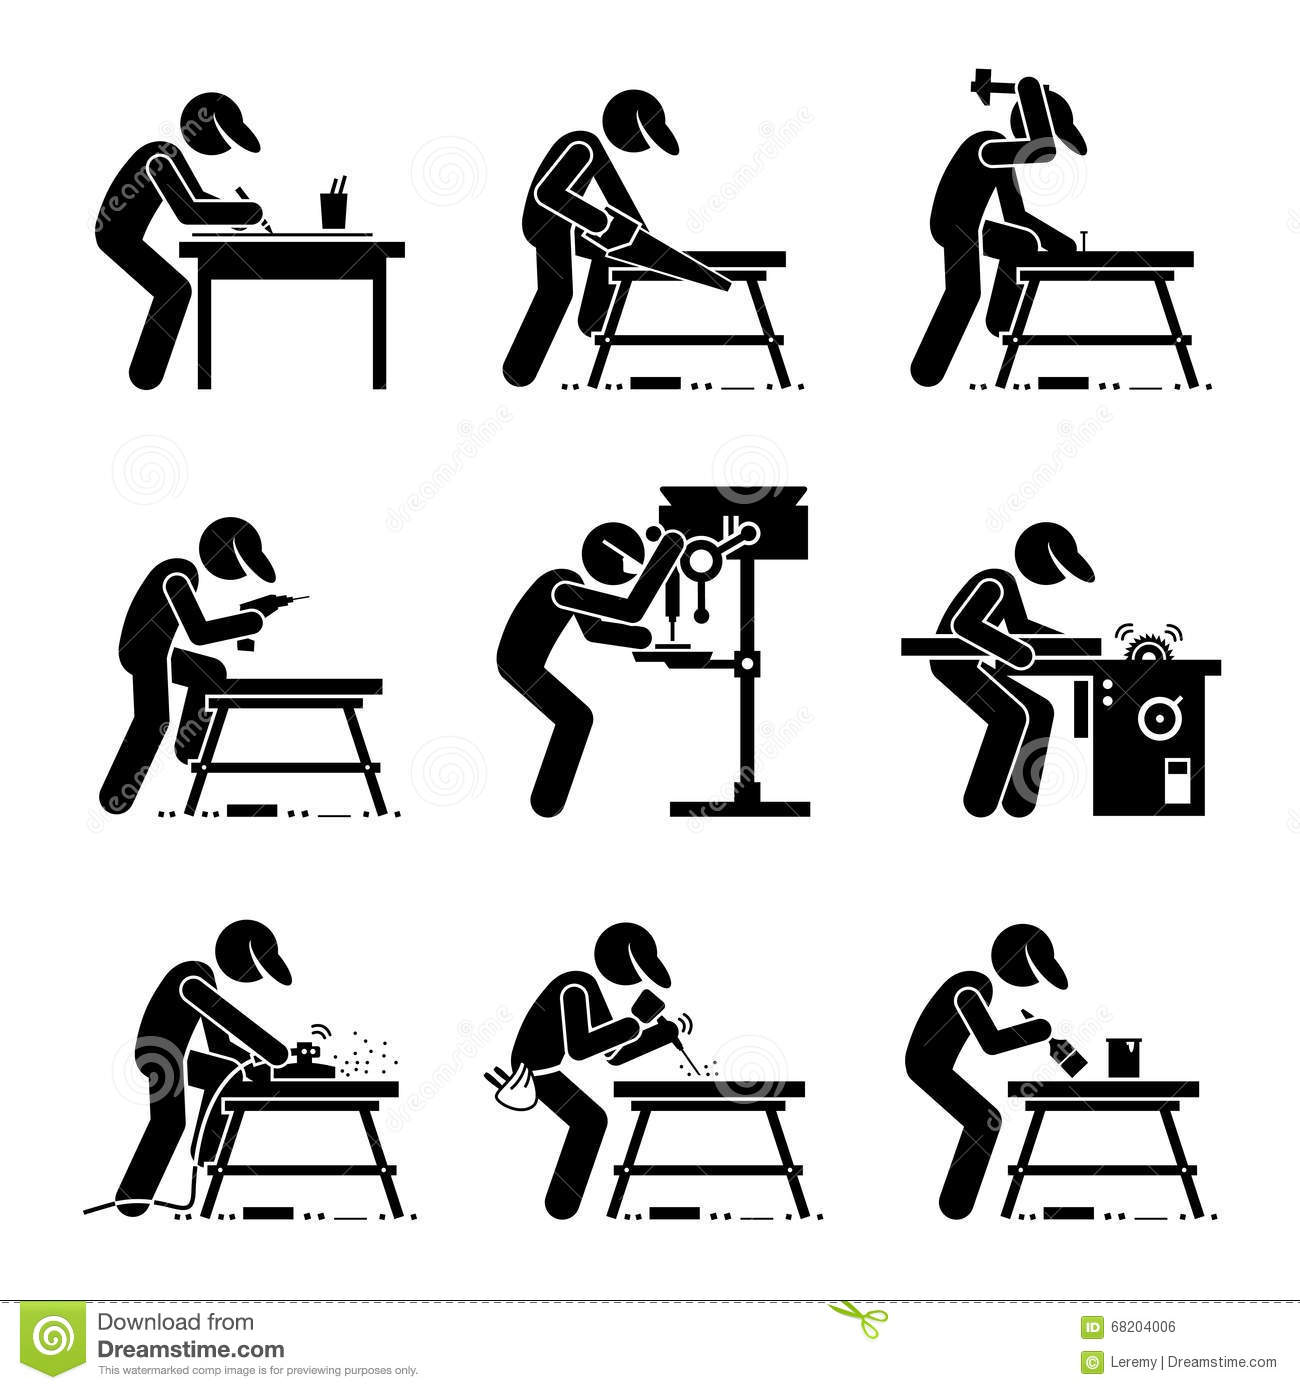 Woodworking Stock Illustrations – 1,496 Woodworking Stock ...